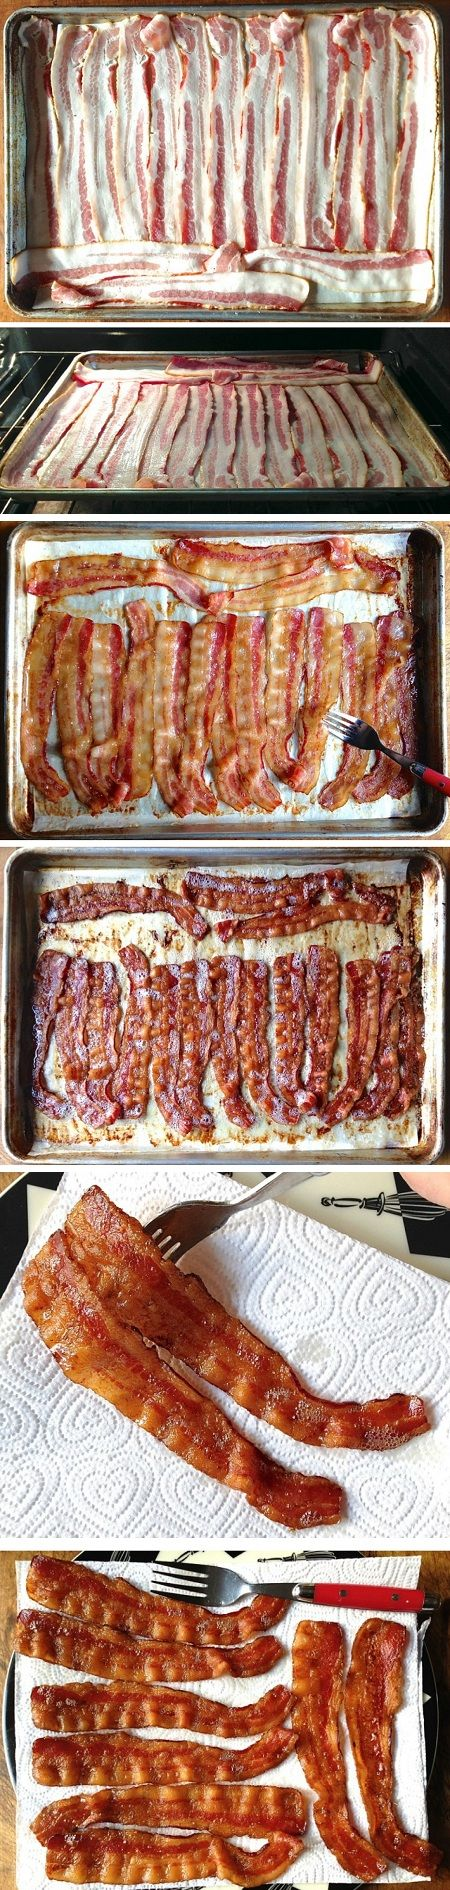 How To Bake Bacon  It's Sooo Much Easier Than Frying And Doesn't Shrink